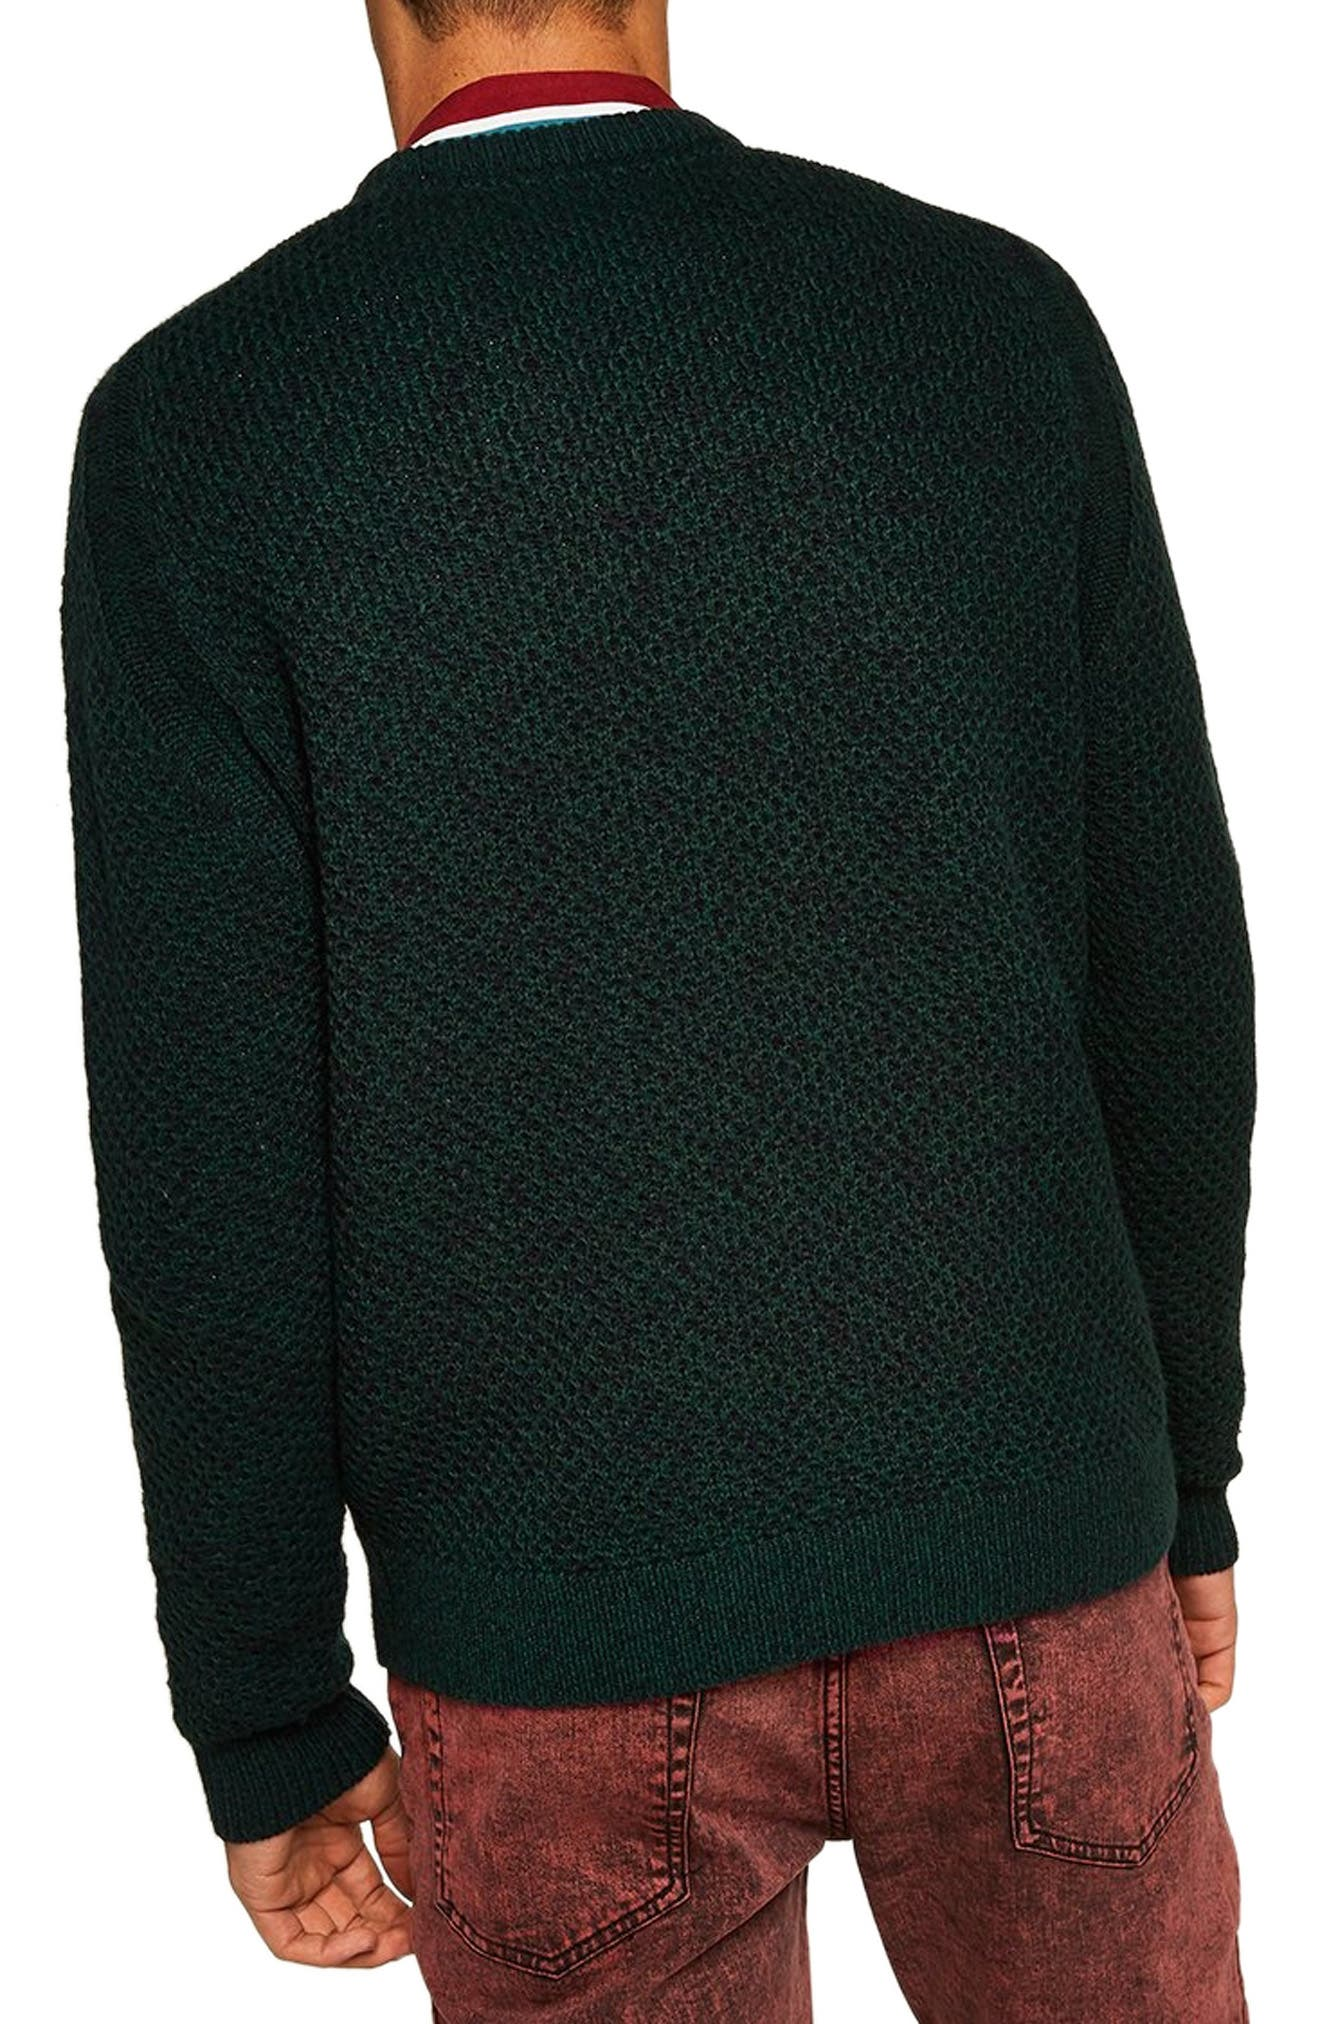 Honeycomb Classic Fit Crewneck Sweater,                             Alternate thumbnail 2, color,                             GREEN MULTI